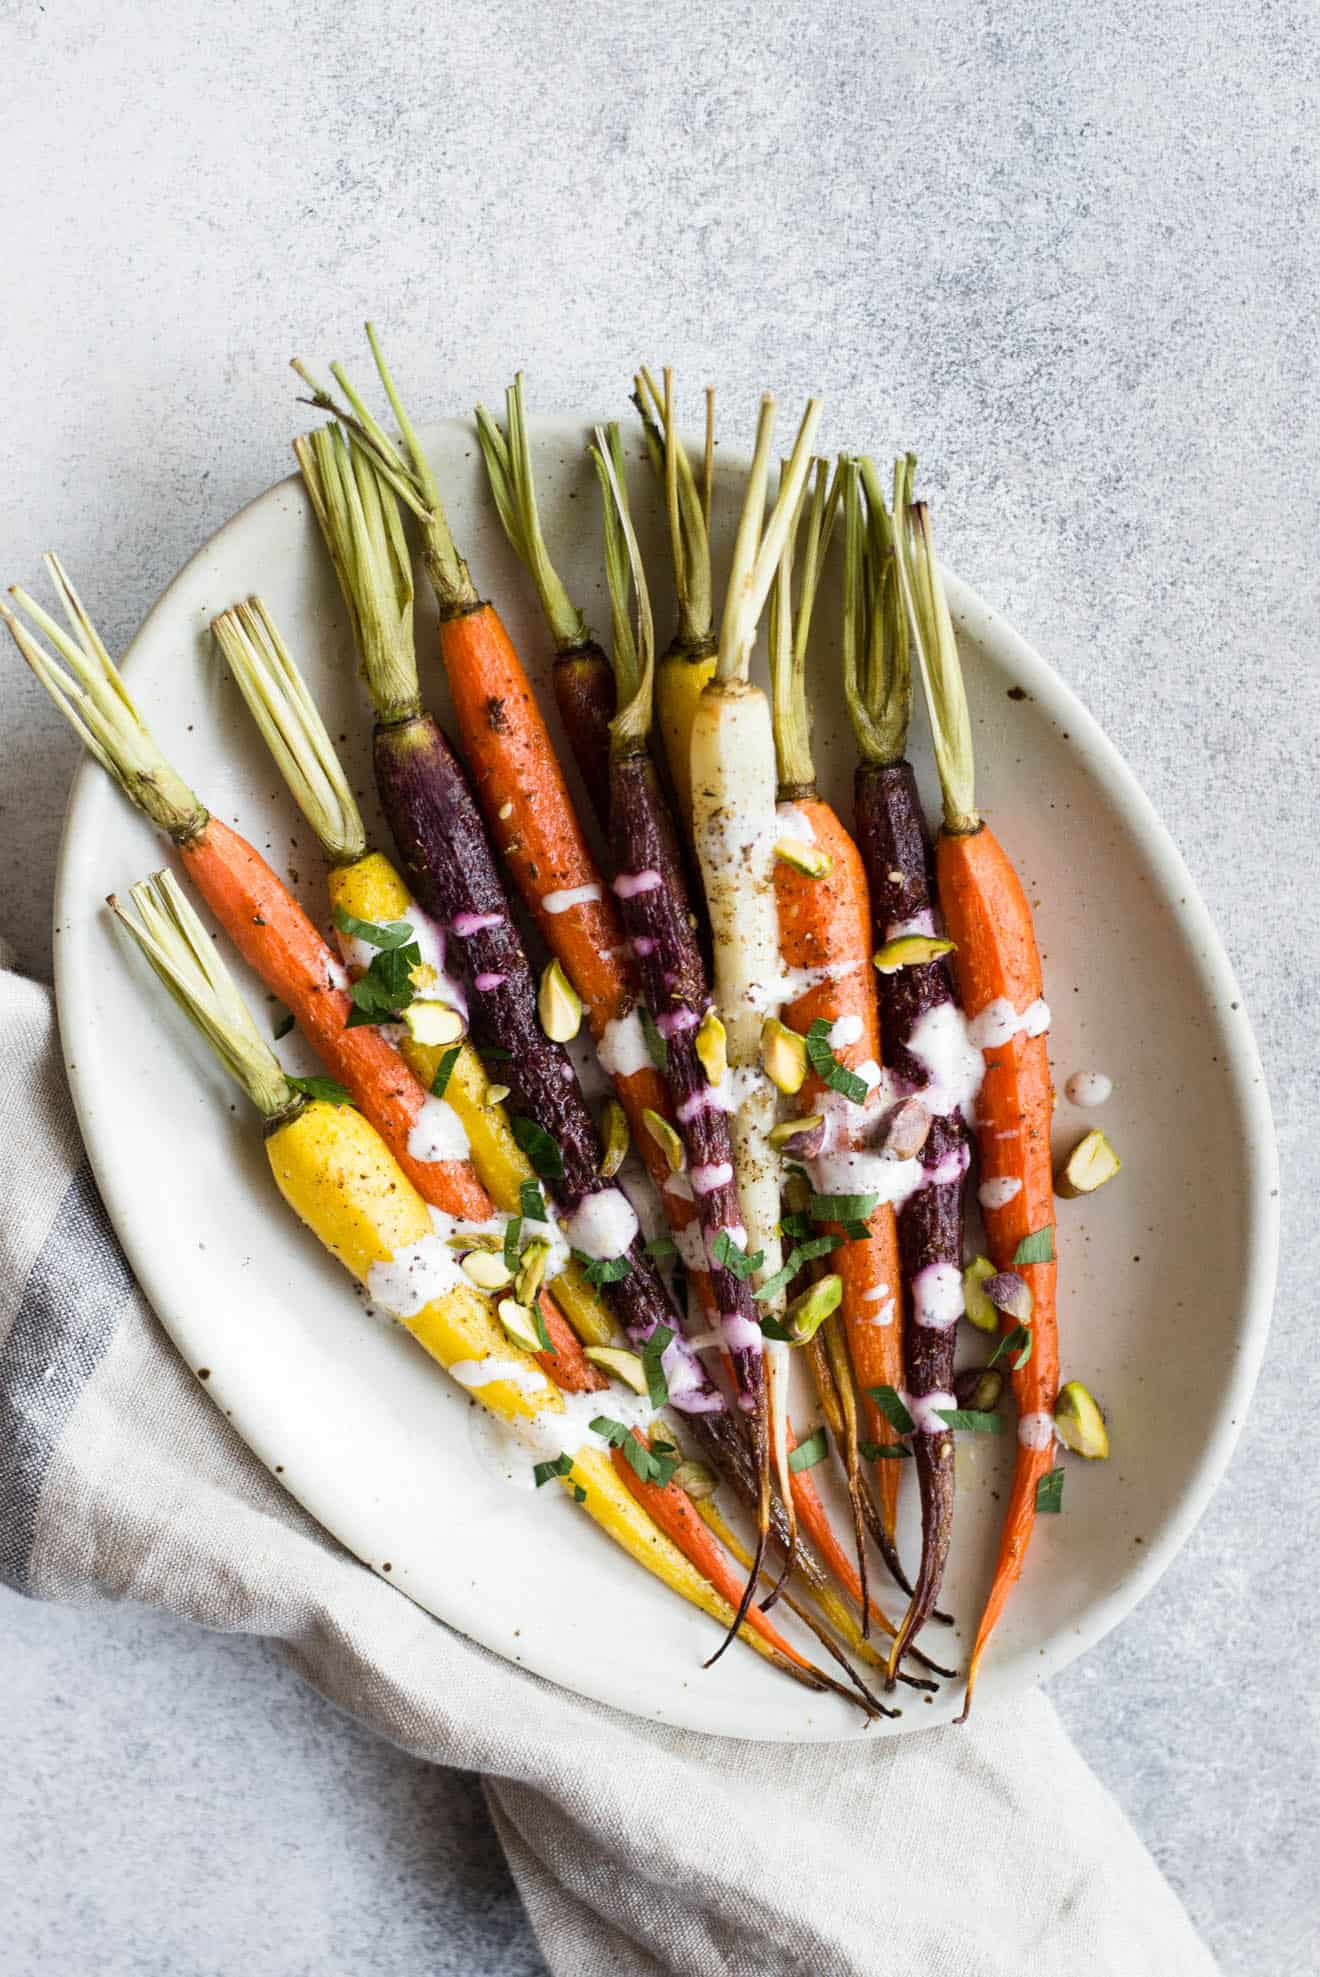 Za'atar Roasted Carrots with Sumac Yogurt Sauce - an easy and healthy holiday side dish! #healthyrecipe #sidedish #vegetarian #carrots